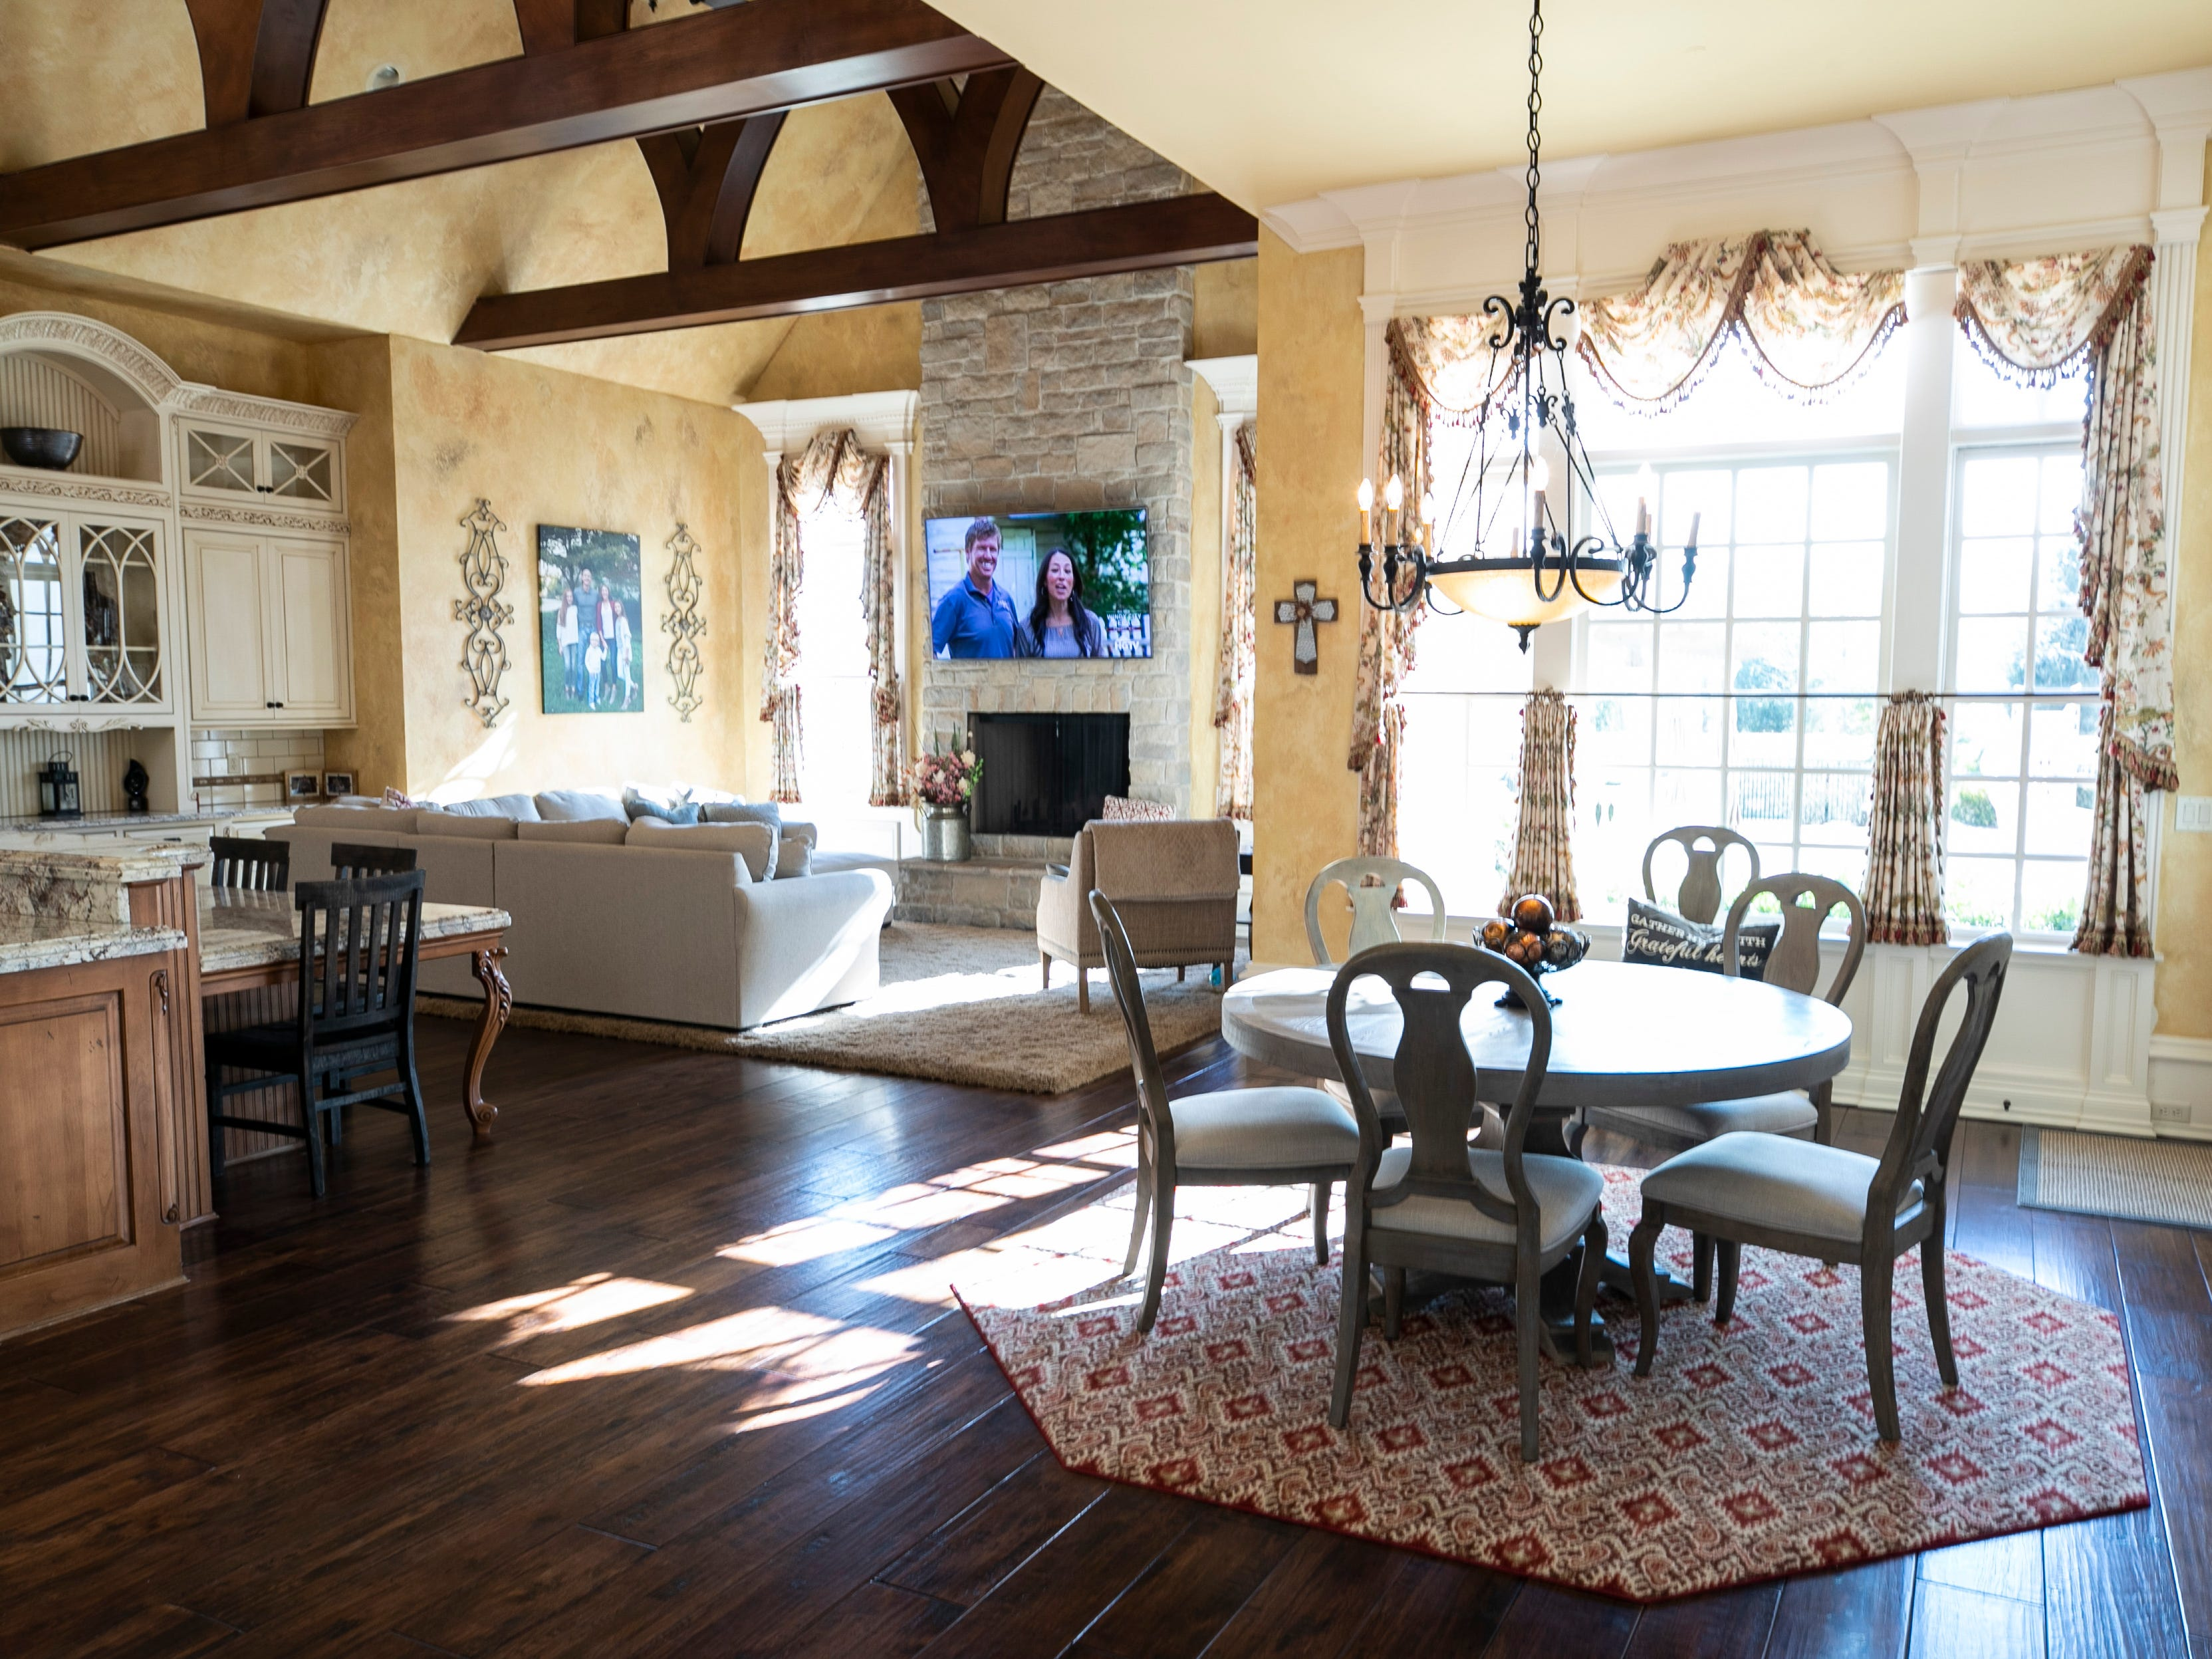 Large windows allow for a bright kitchen and dining area at the Mack home.